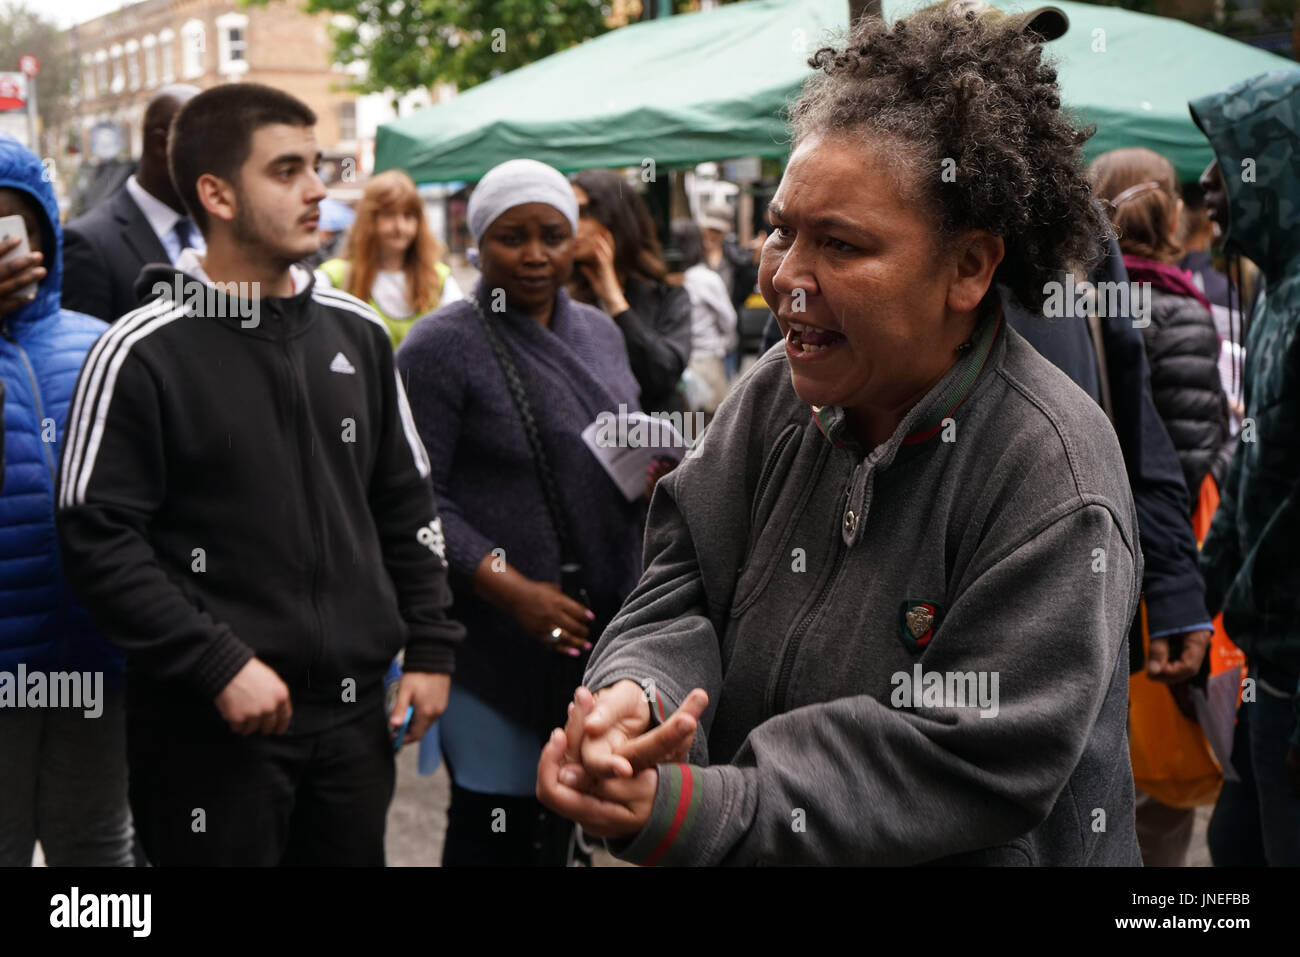 Stoke Newington Police, London, England, UK. 29th July, 2017. Stand Up To Racism hosts a Justice For Rashan and - Stock Image